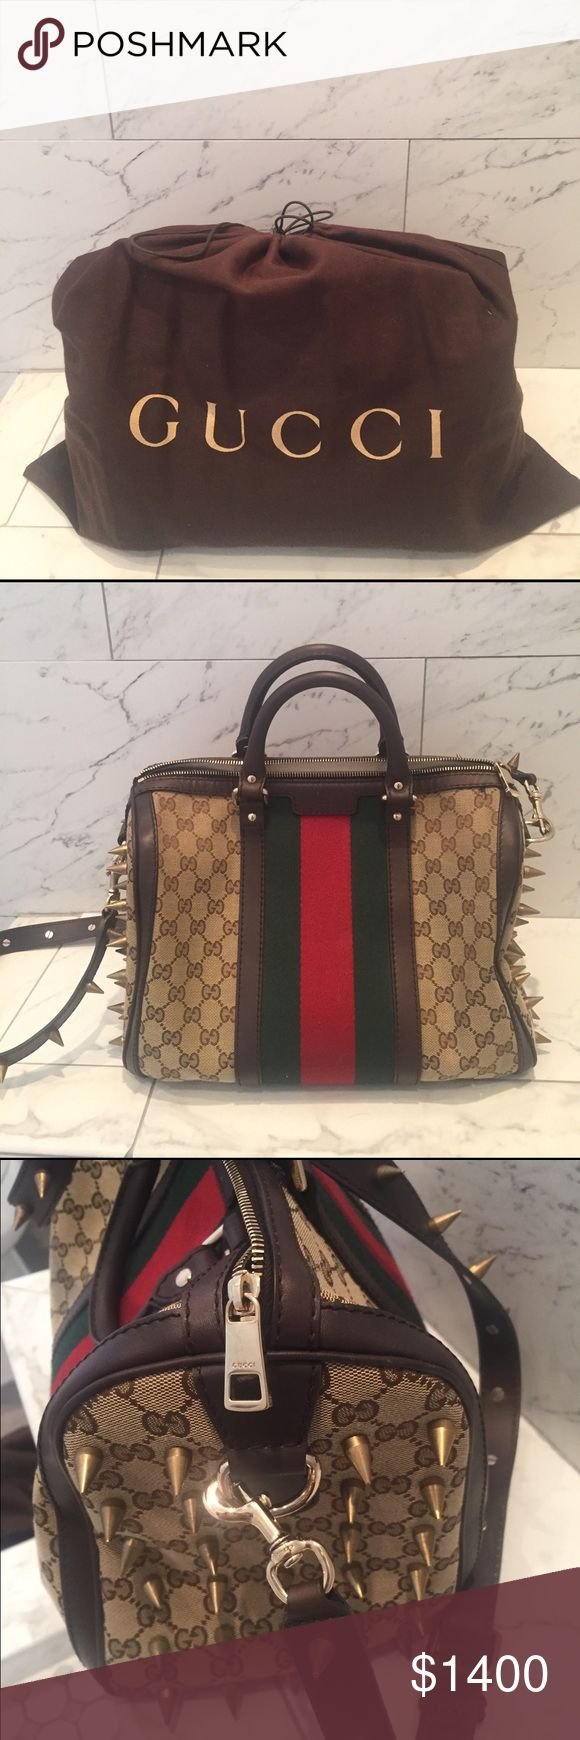 gucci vintage web boston bag customized vintage web gg boston bag beigeebony